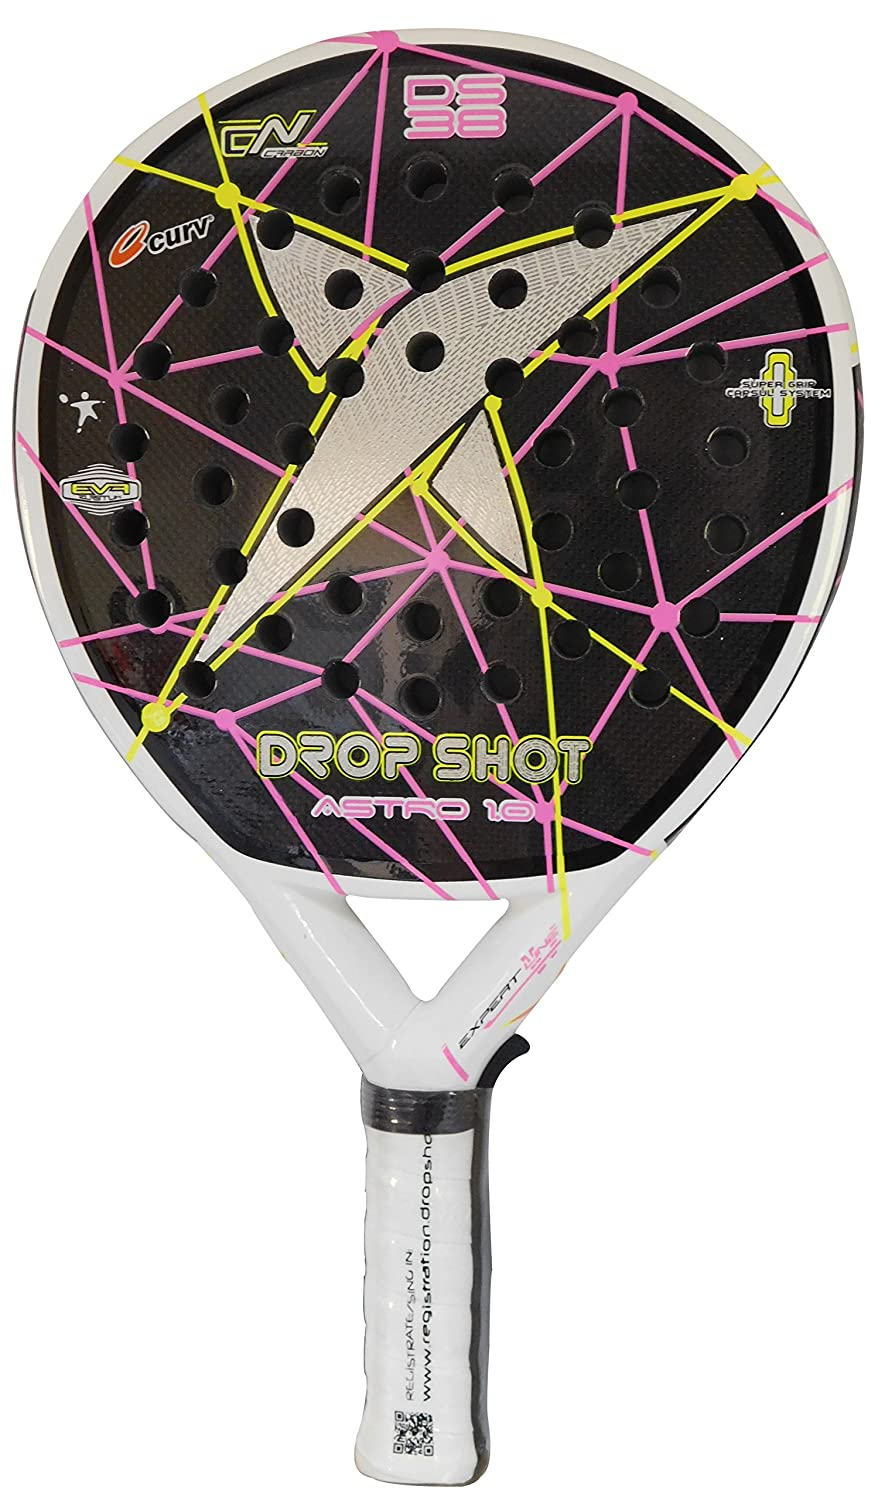 DROP SHOT Astro 1.0 - Pala de pádel, Color Negro/Rosa / Amarillo, Talla 38 mm: Amazon.es: Deportes y aire libre